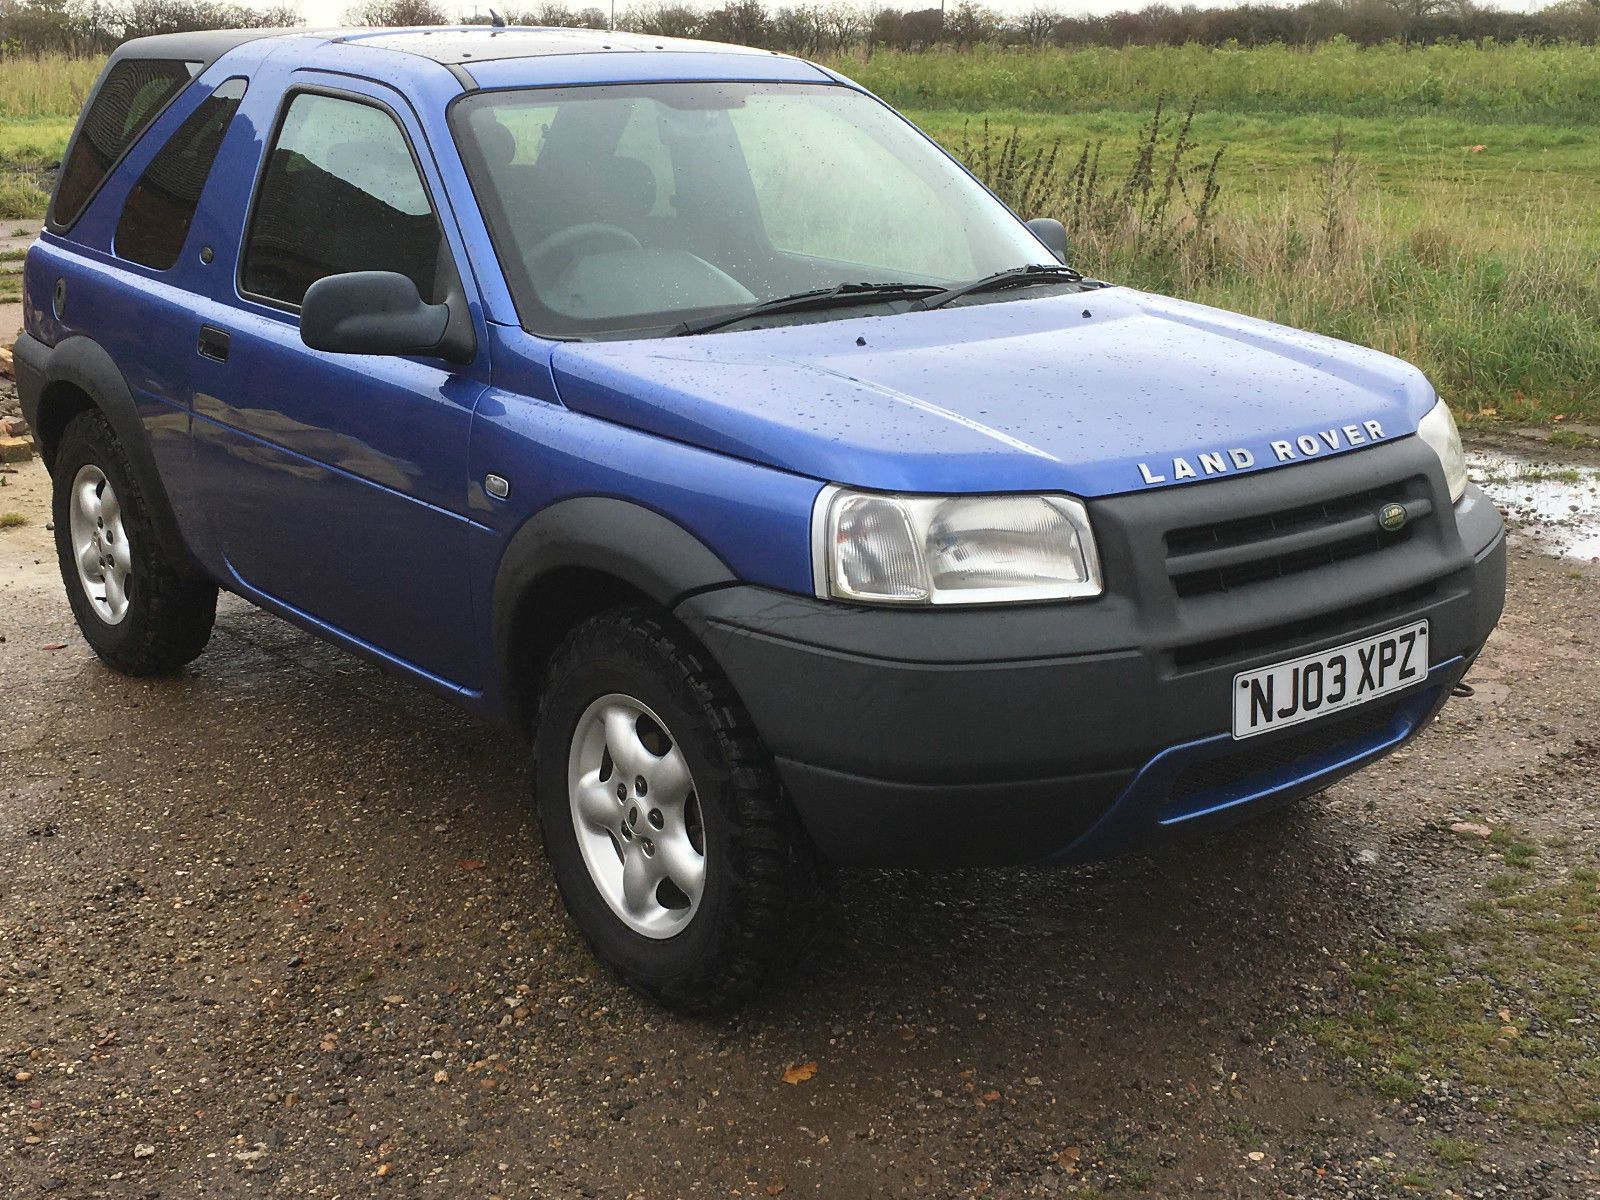 diesel manual landrover green details ref adventurer seat breakers to rover freelander parts discovery door land year